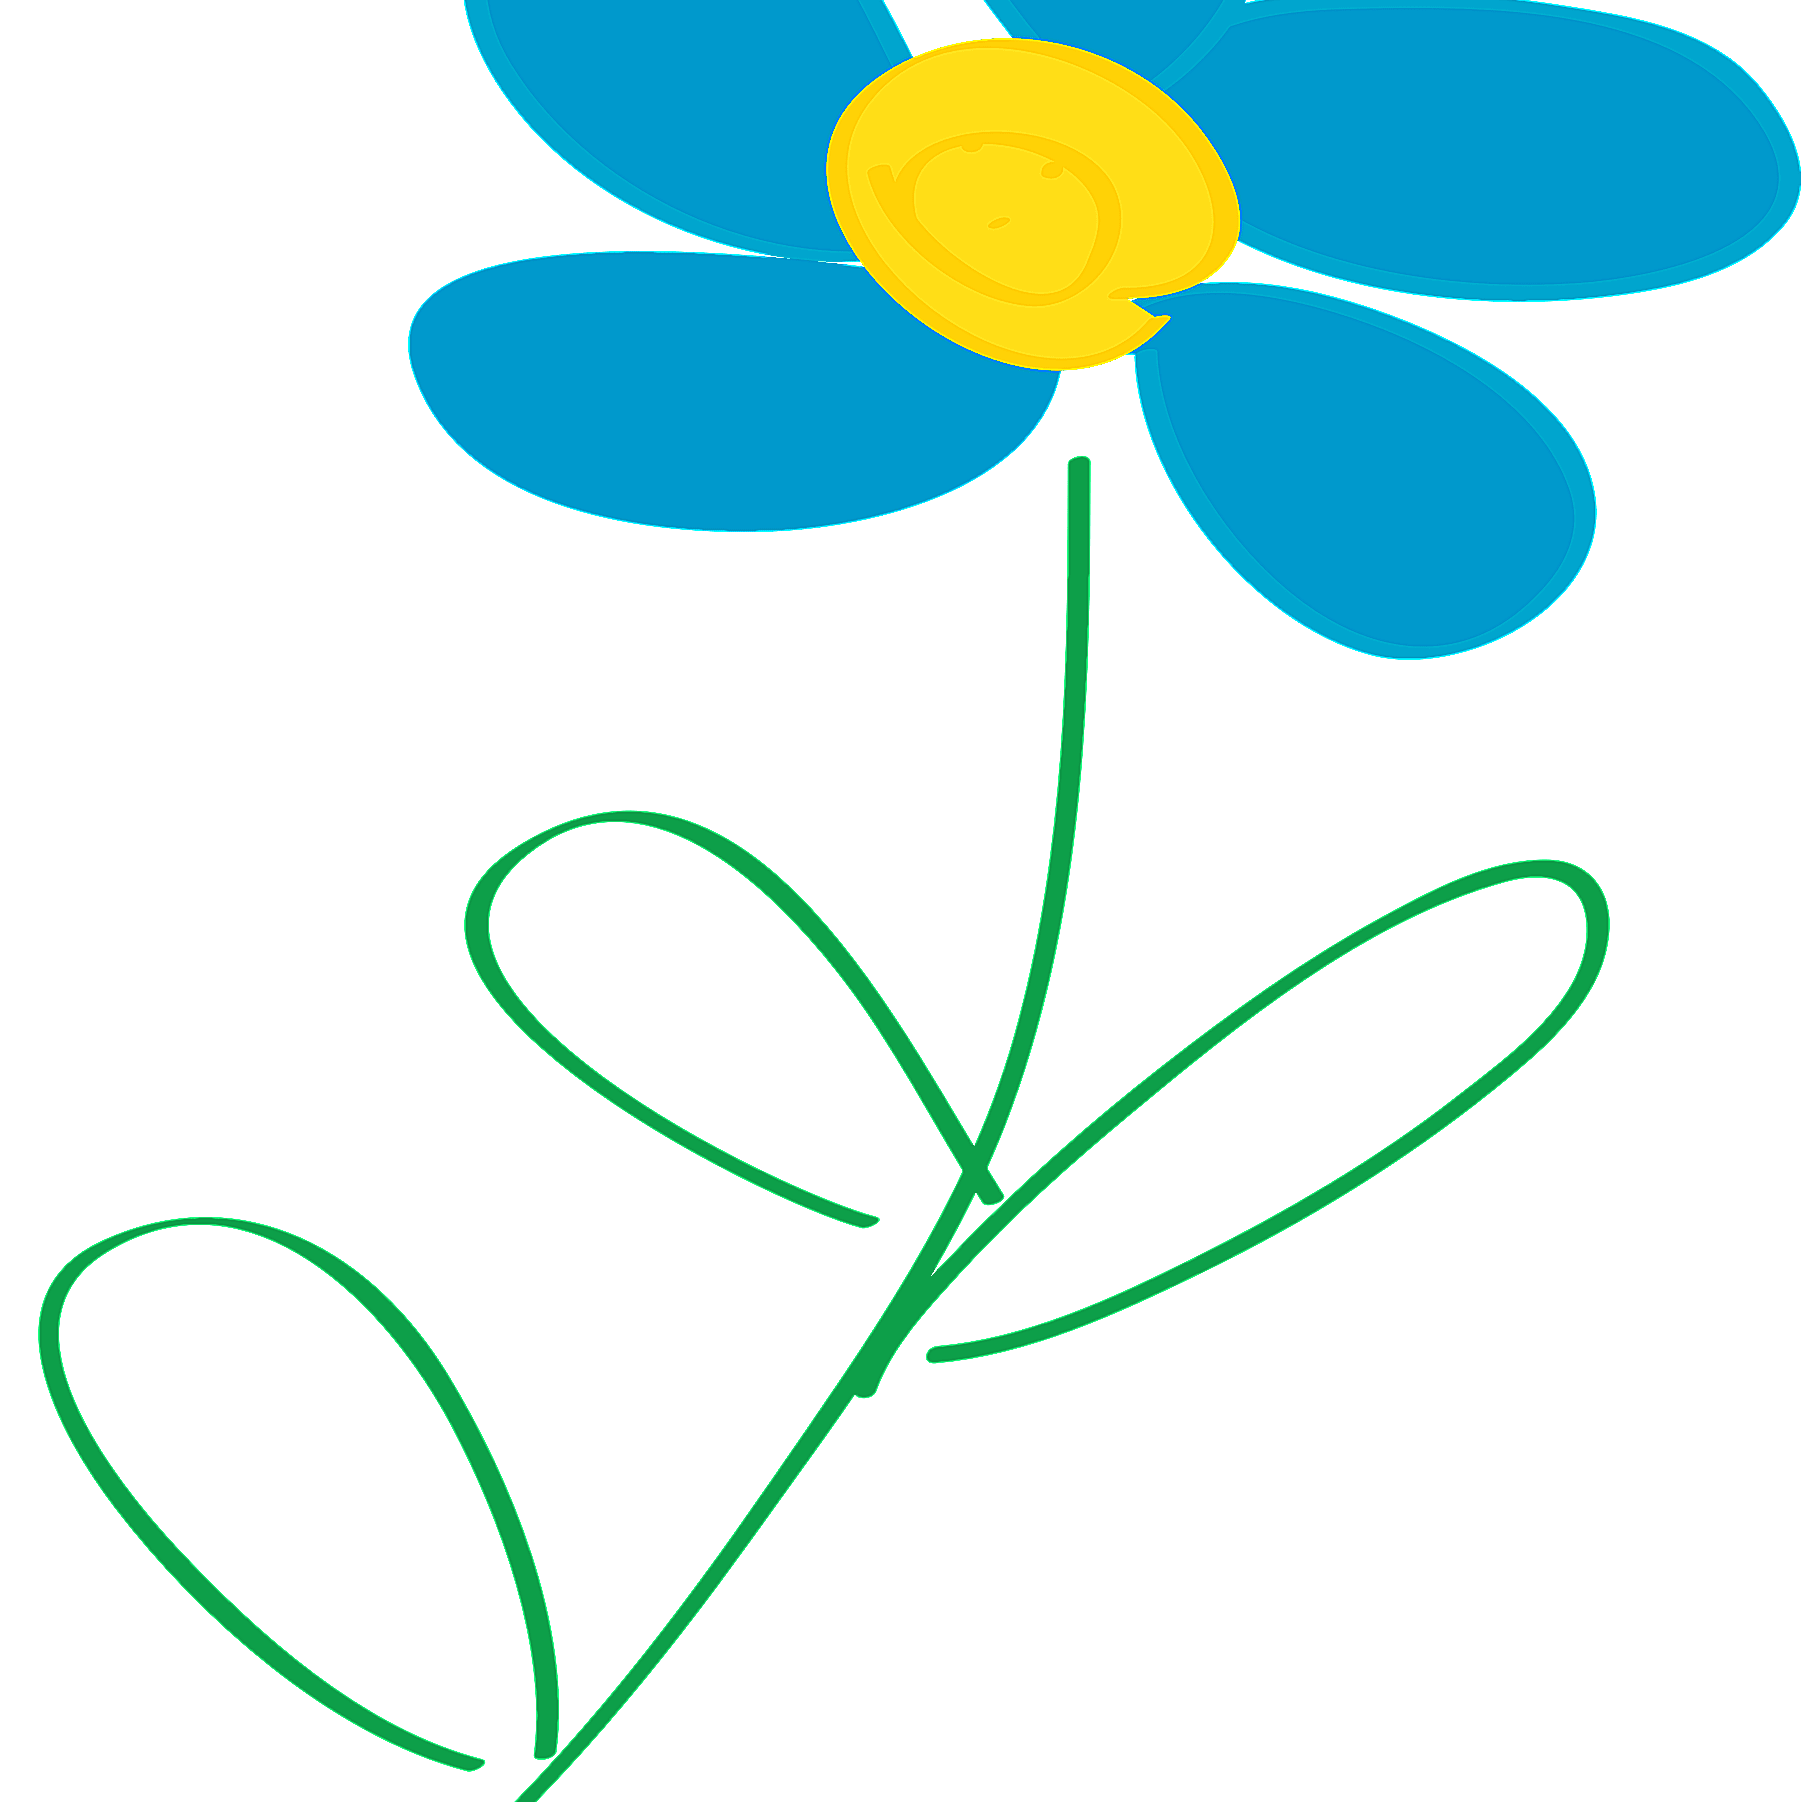 hight resolution of free flower clip art from openclipart